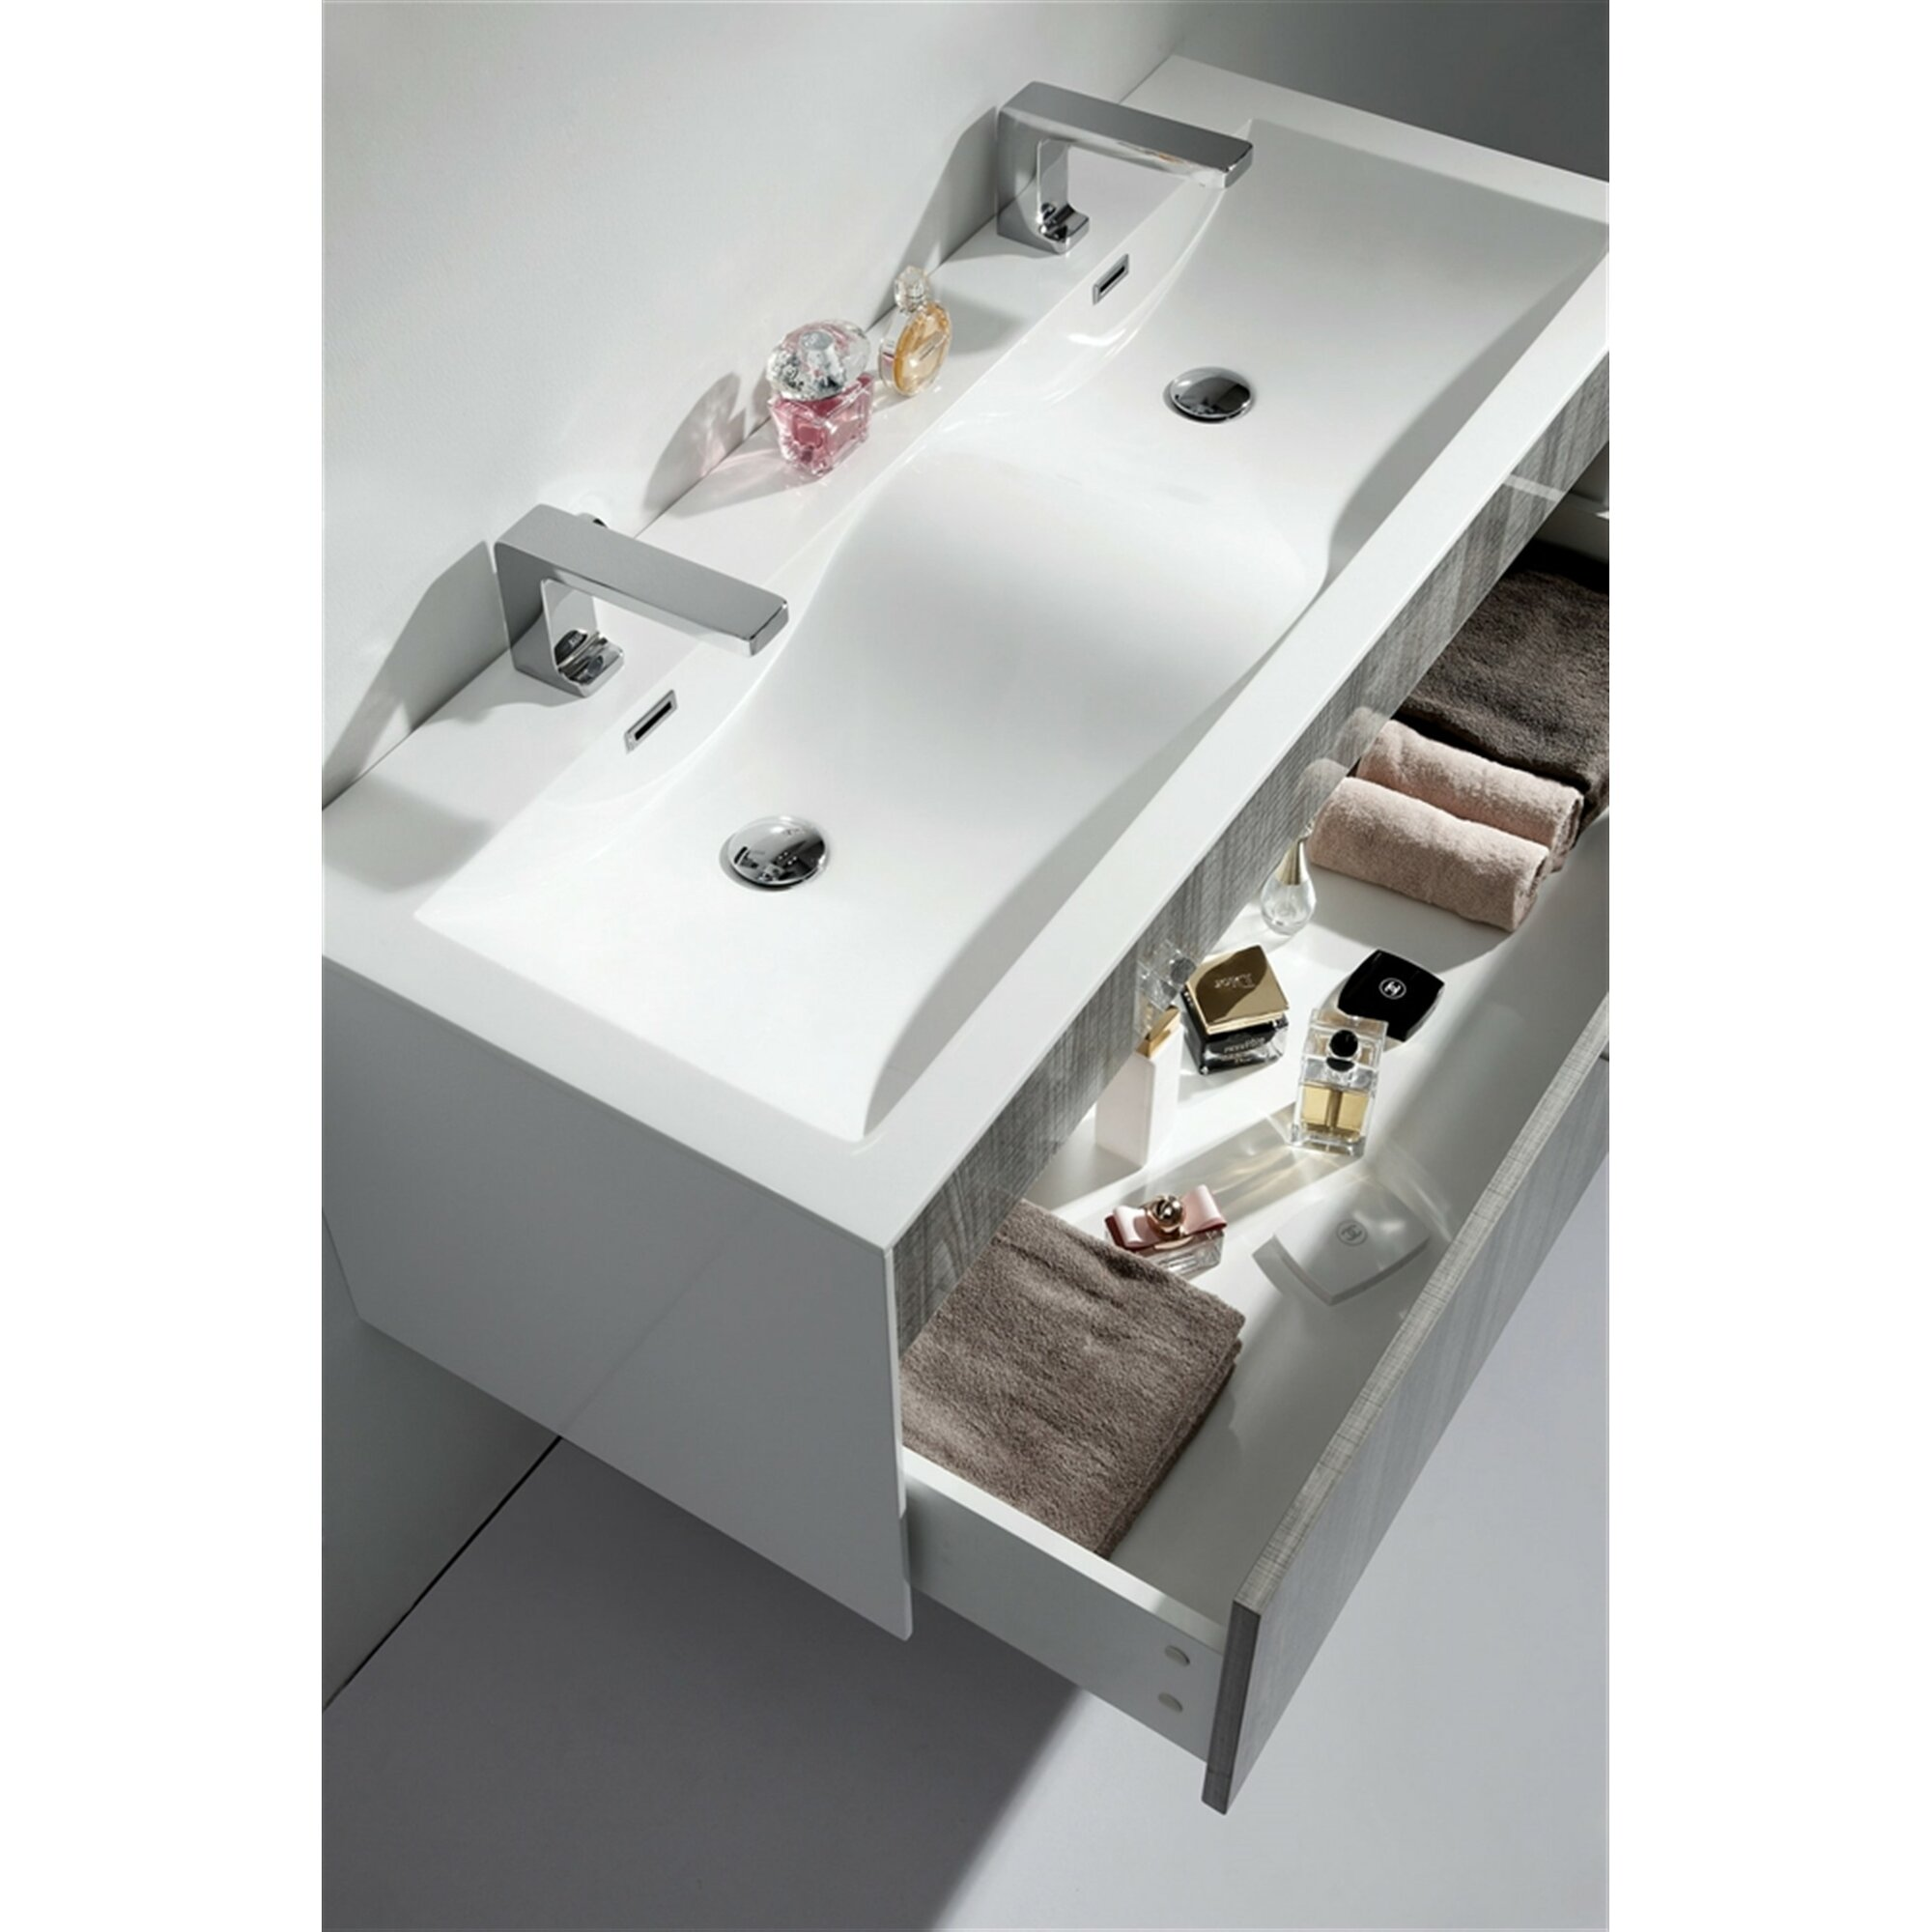 Wade logan brockman 48 double sink modern bathroom vanity set reviews - Kona modern bathroom vanity set ...